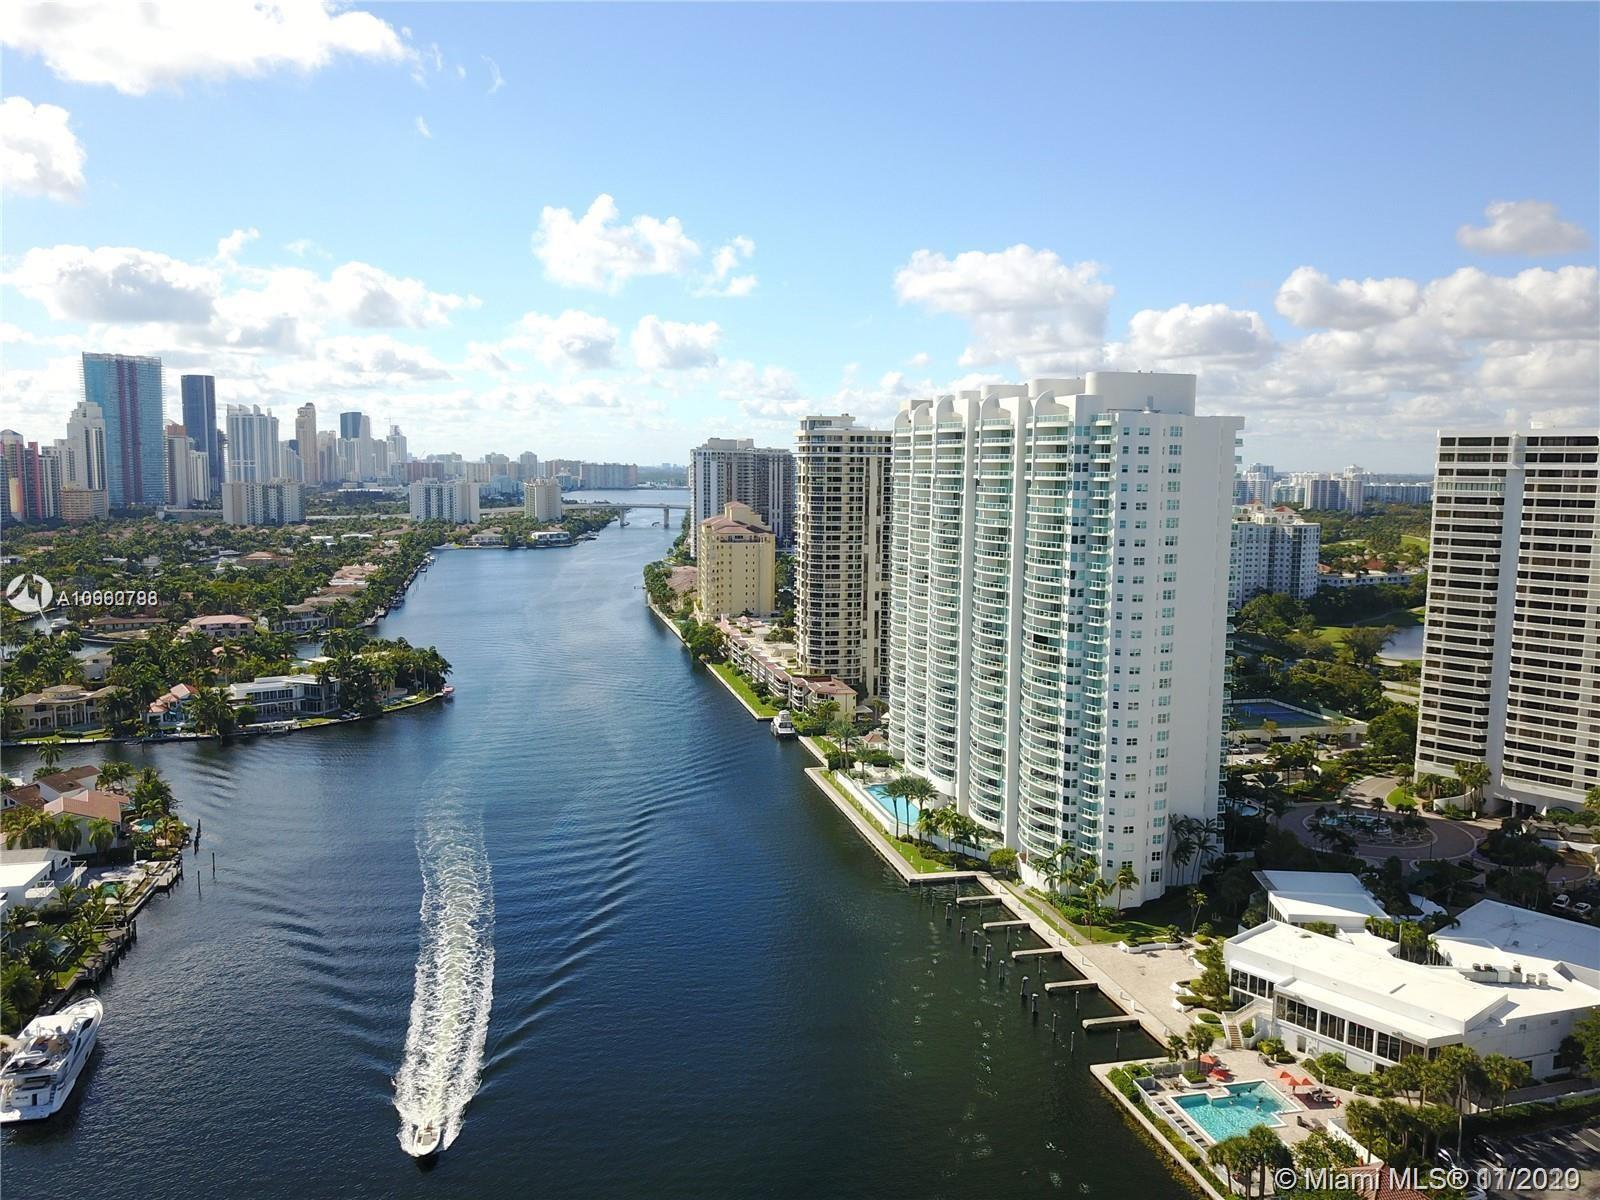 Luxury living, totally unobstructed views! The views of this unit are spectacular. Ocean and intraco